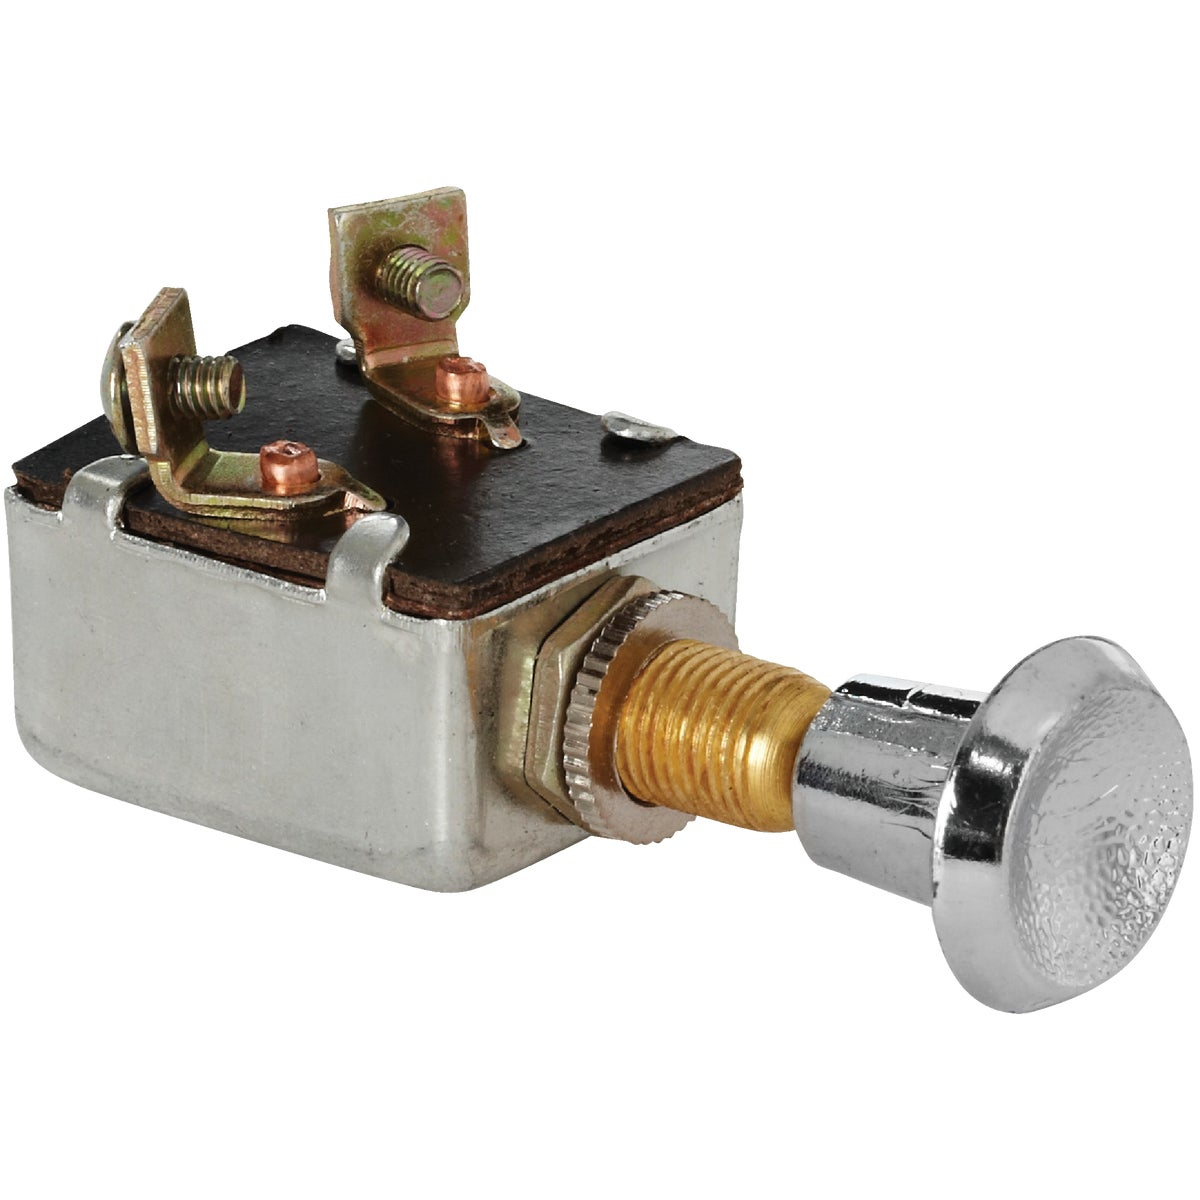 PUSH-PULL HDLIGHT SWITCH - 42200 by G B Electrical Inc